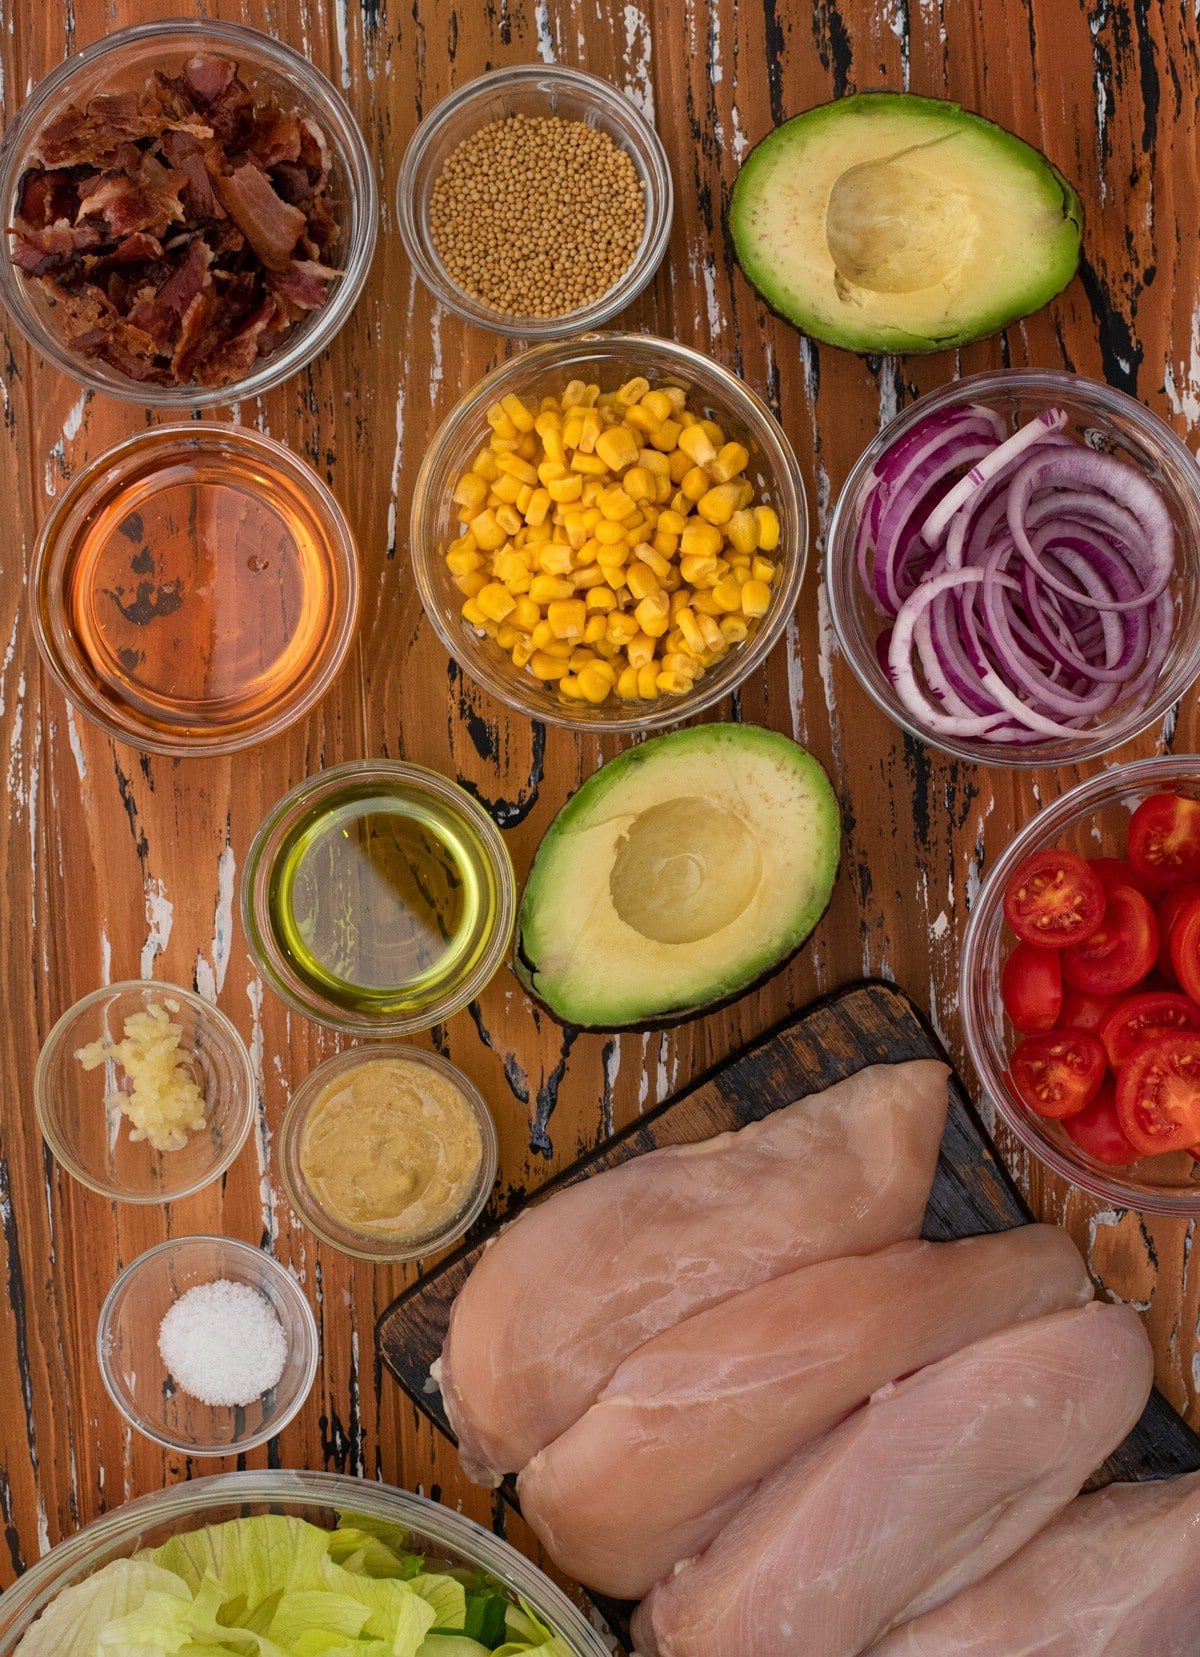 Ingredients for chicken salad in glass bowls on cutting board